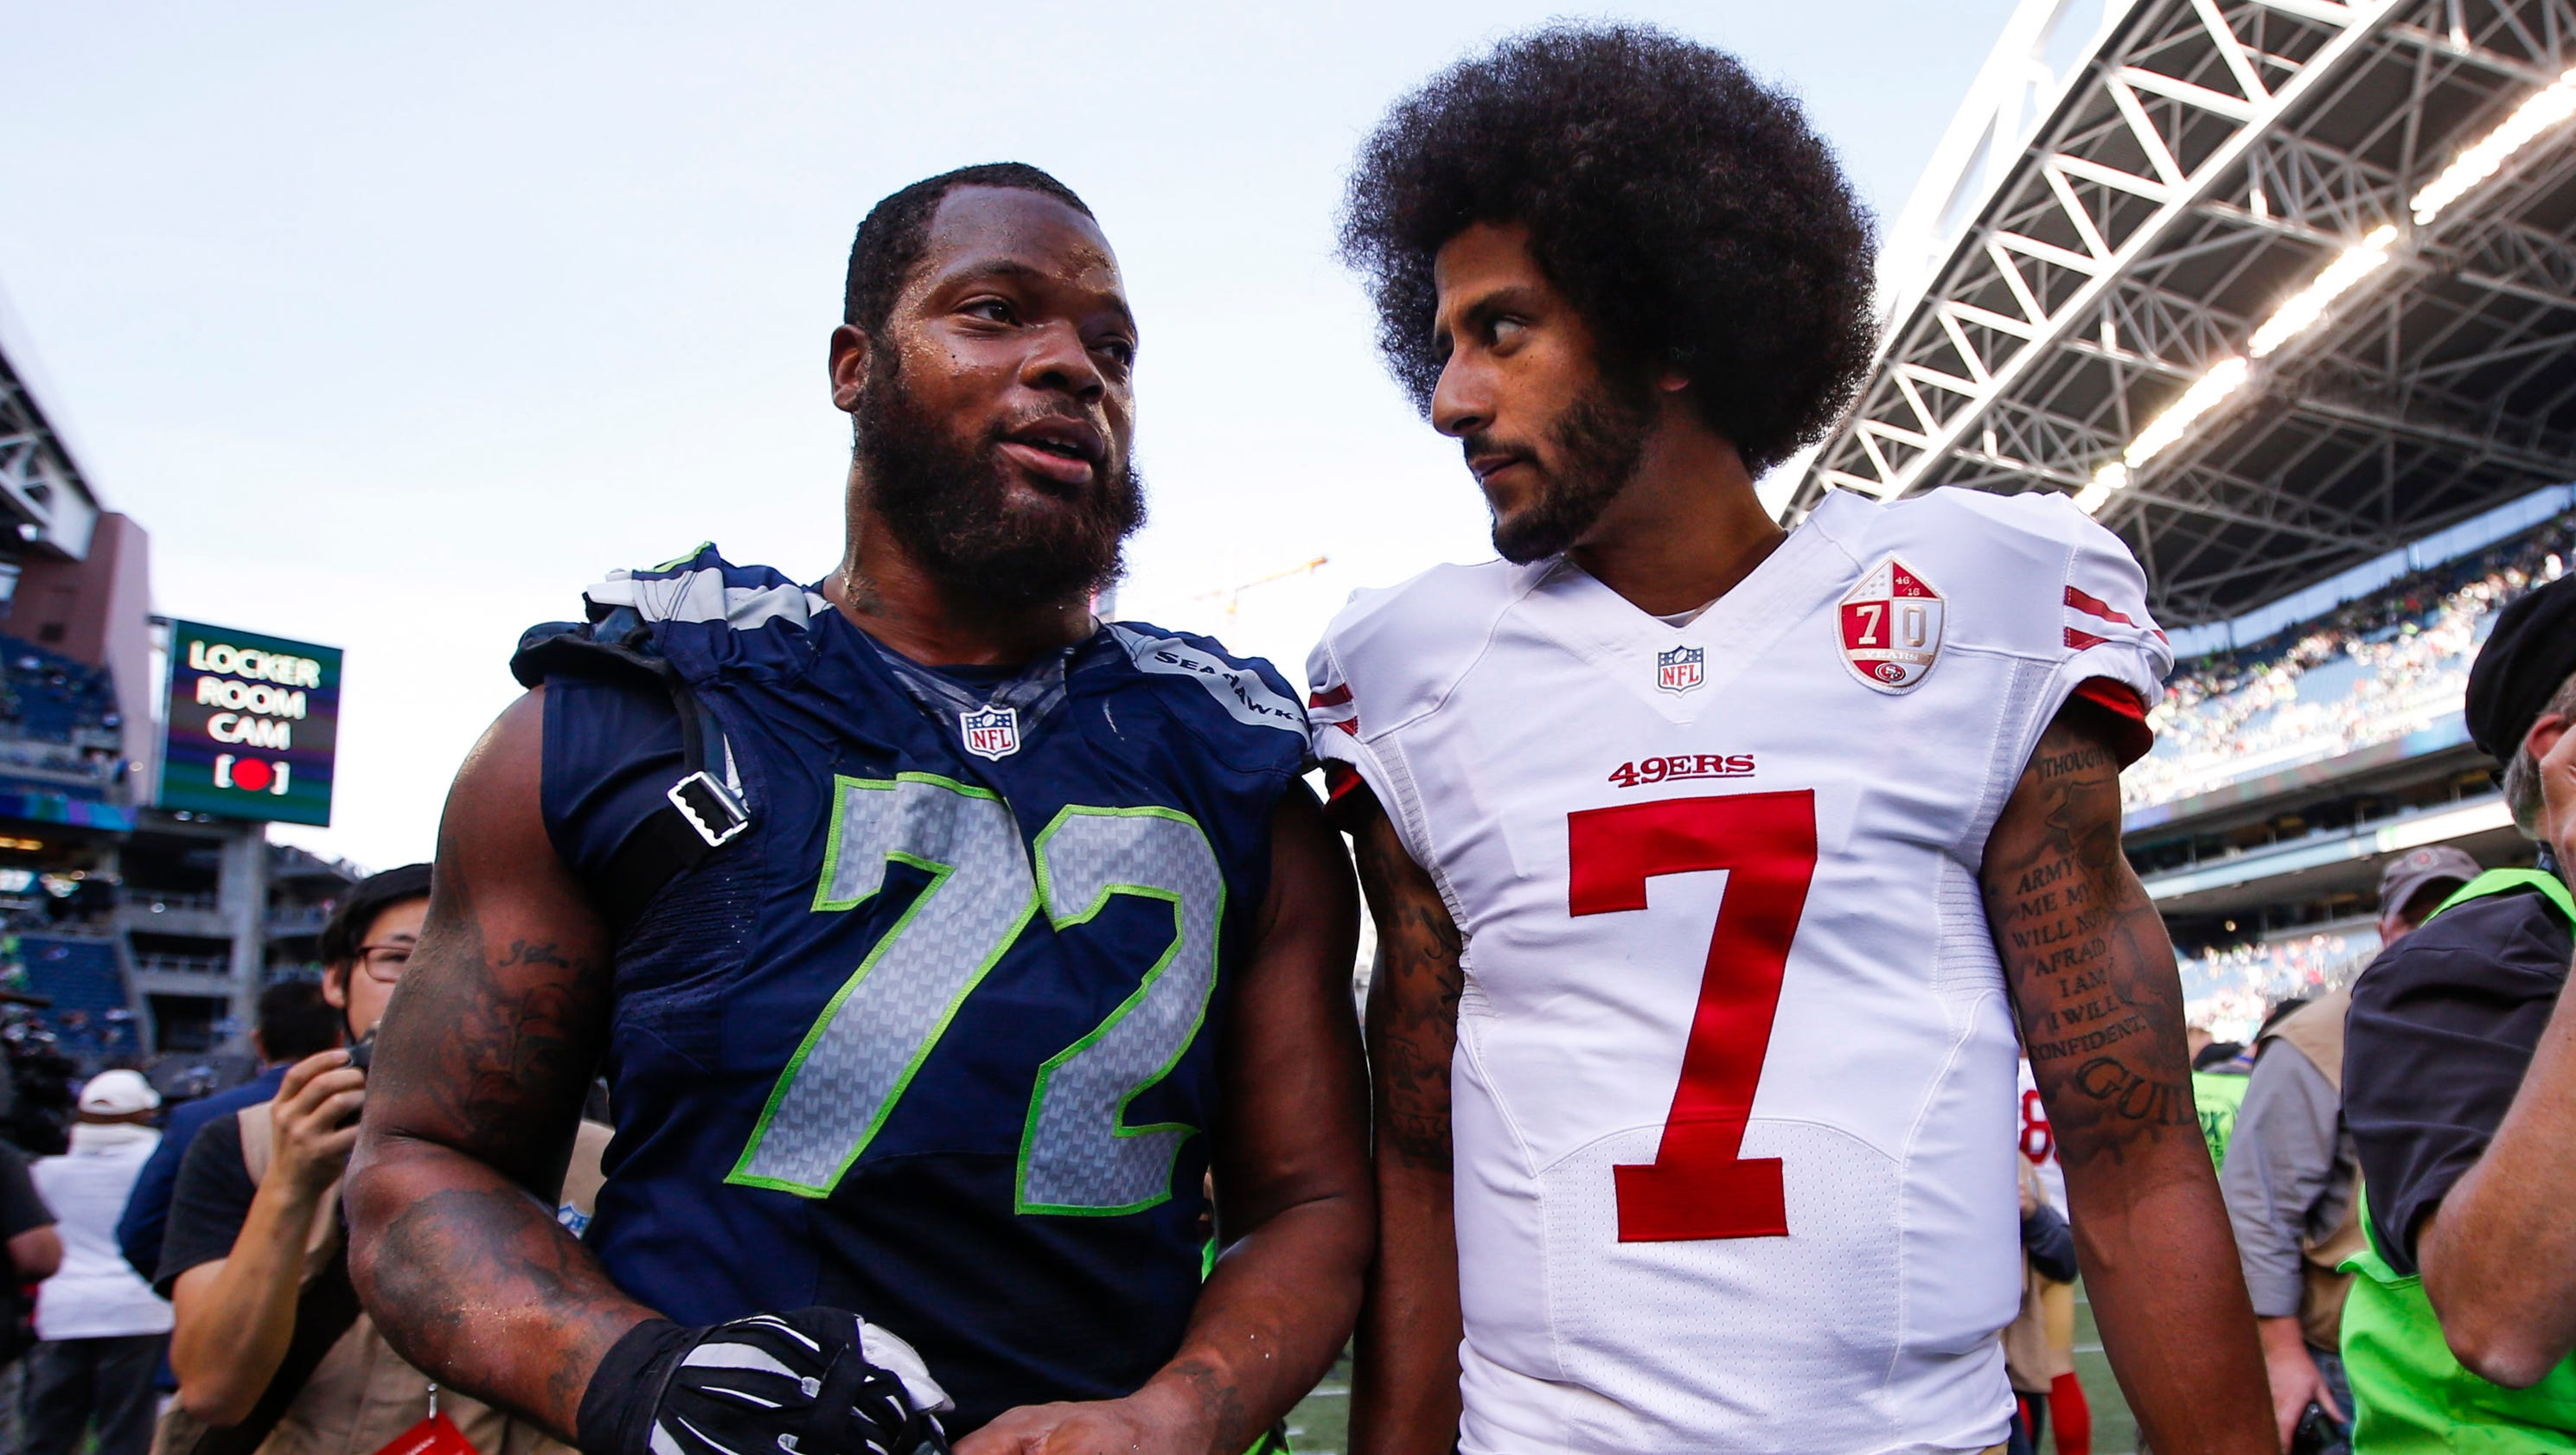 636384109444027406-usp-nfl-san-francisco-49ers-at-seattle-seahawks-85509144